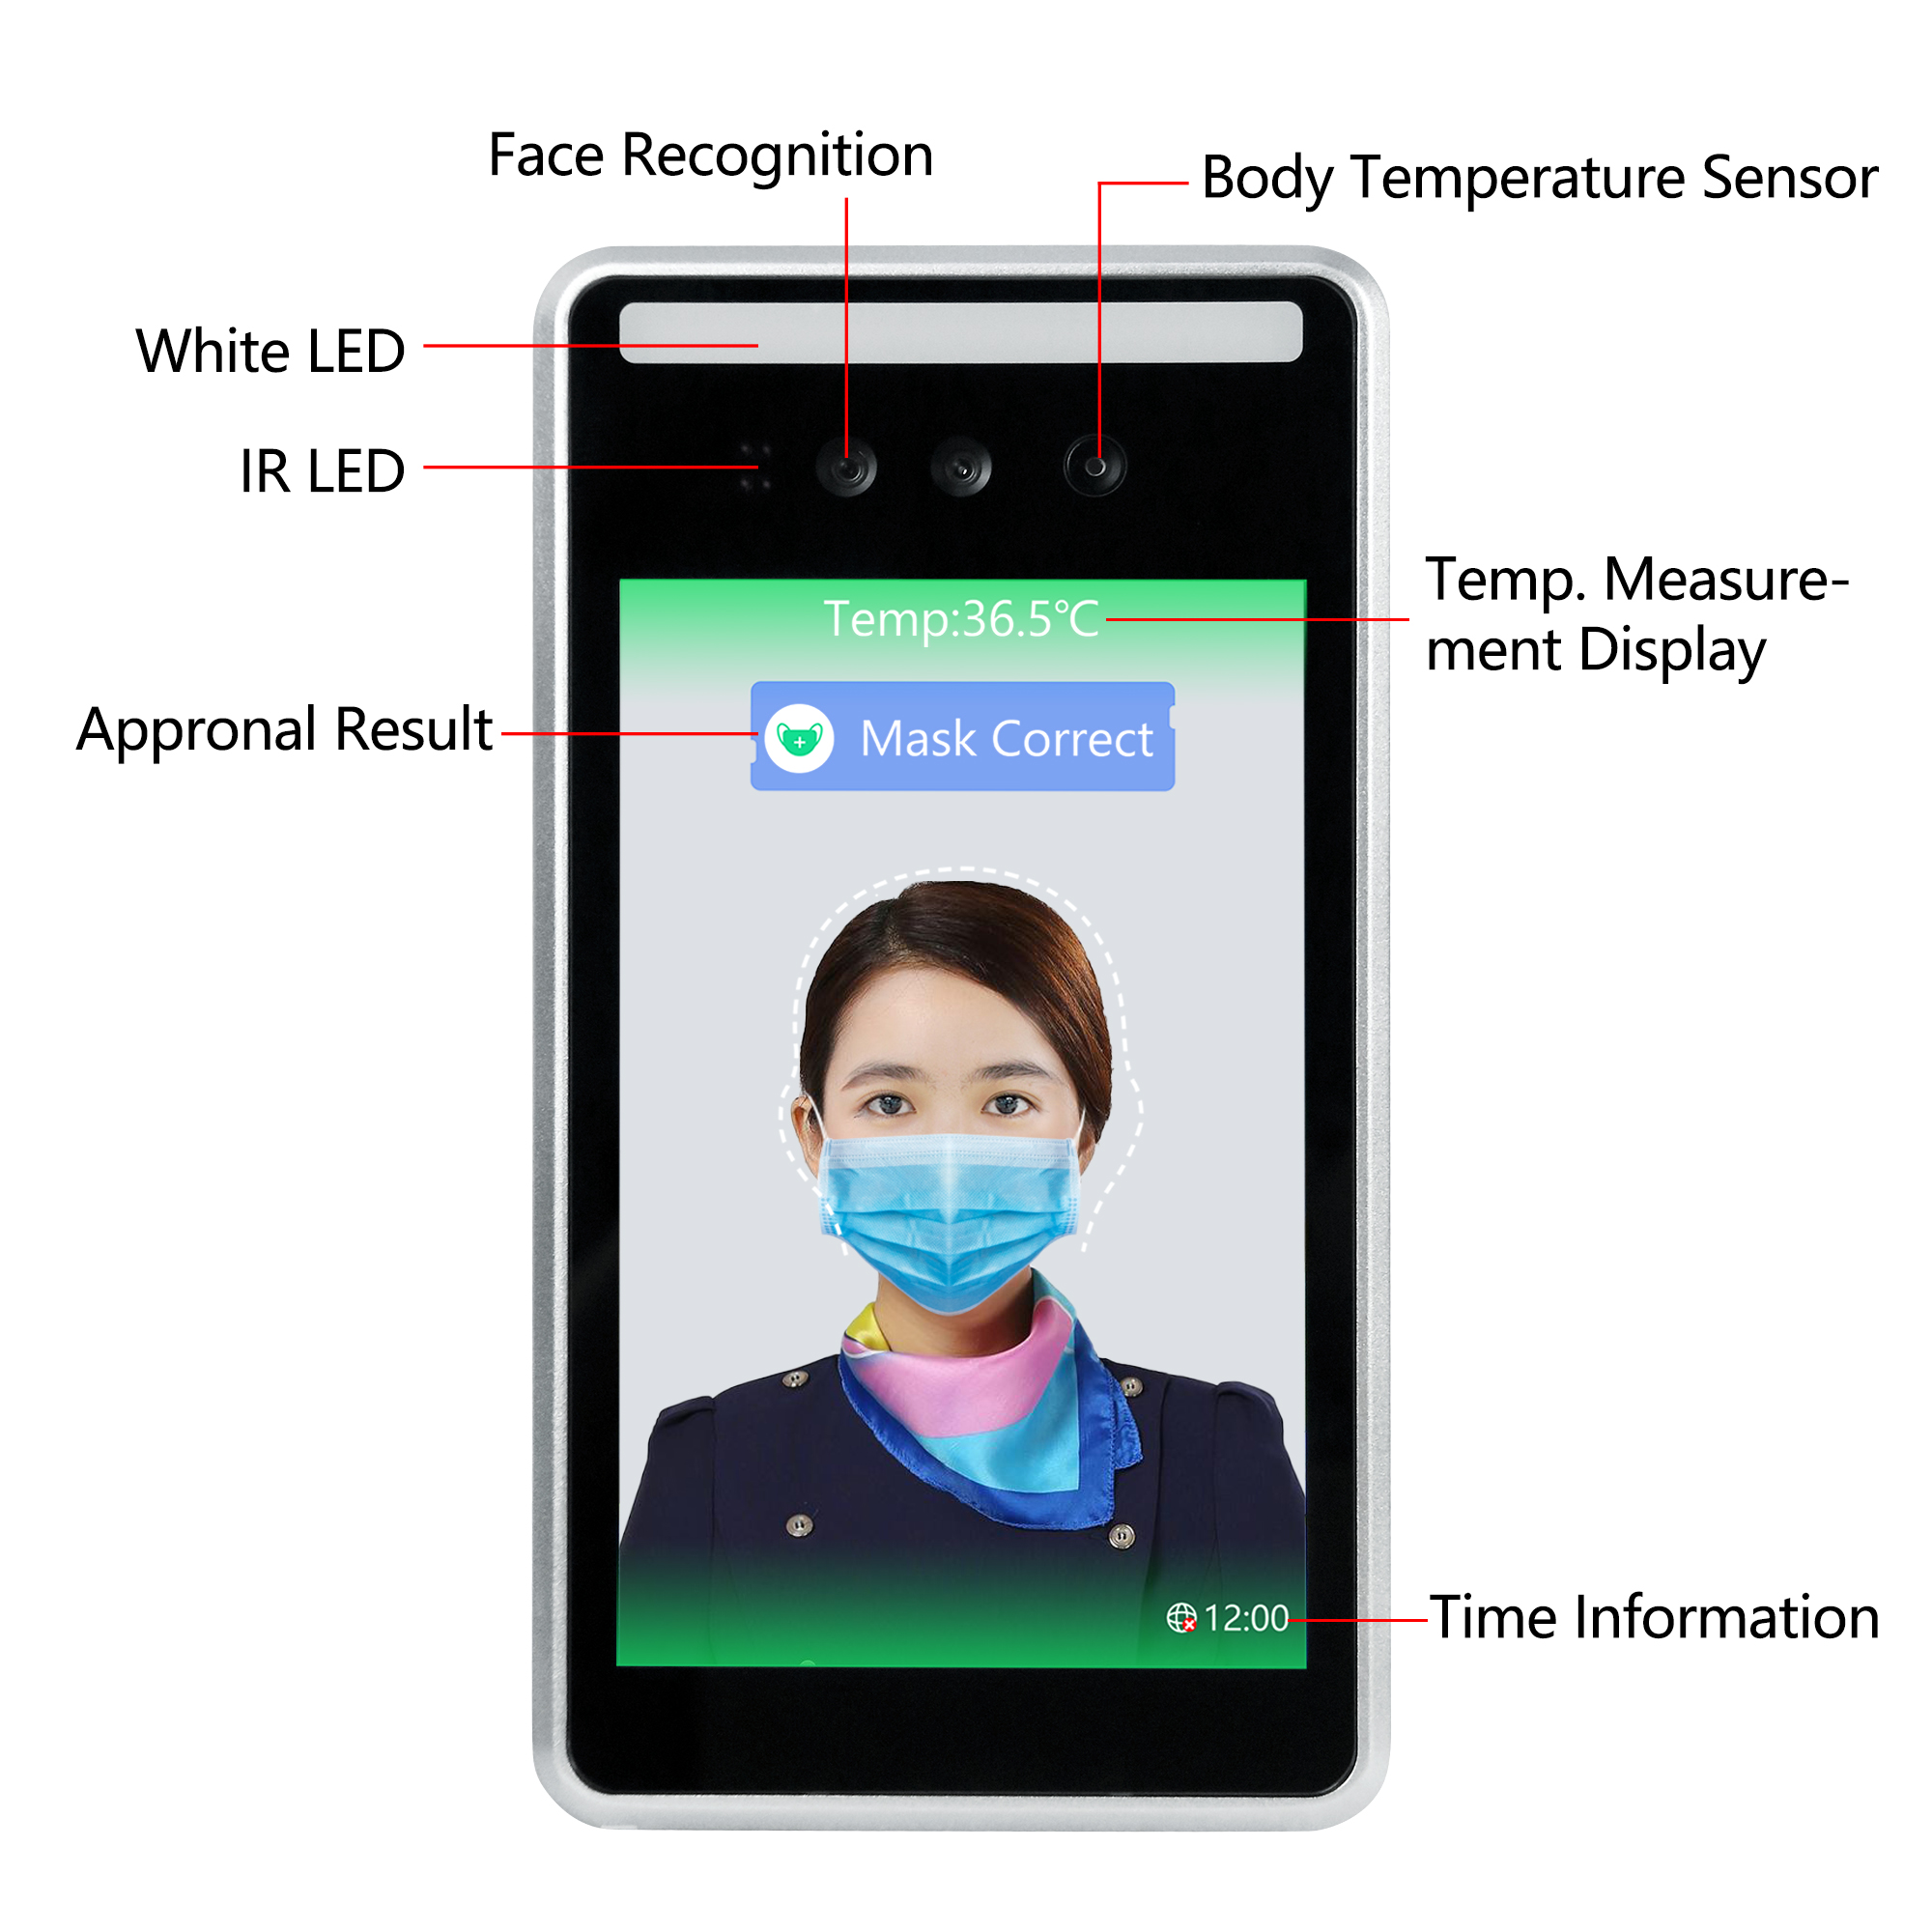 Wall-Mounted Infrared Measurement Quick Identity Verification Attendance Record Function Thermometer Camera